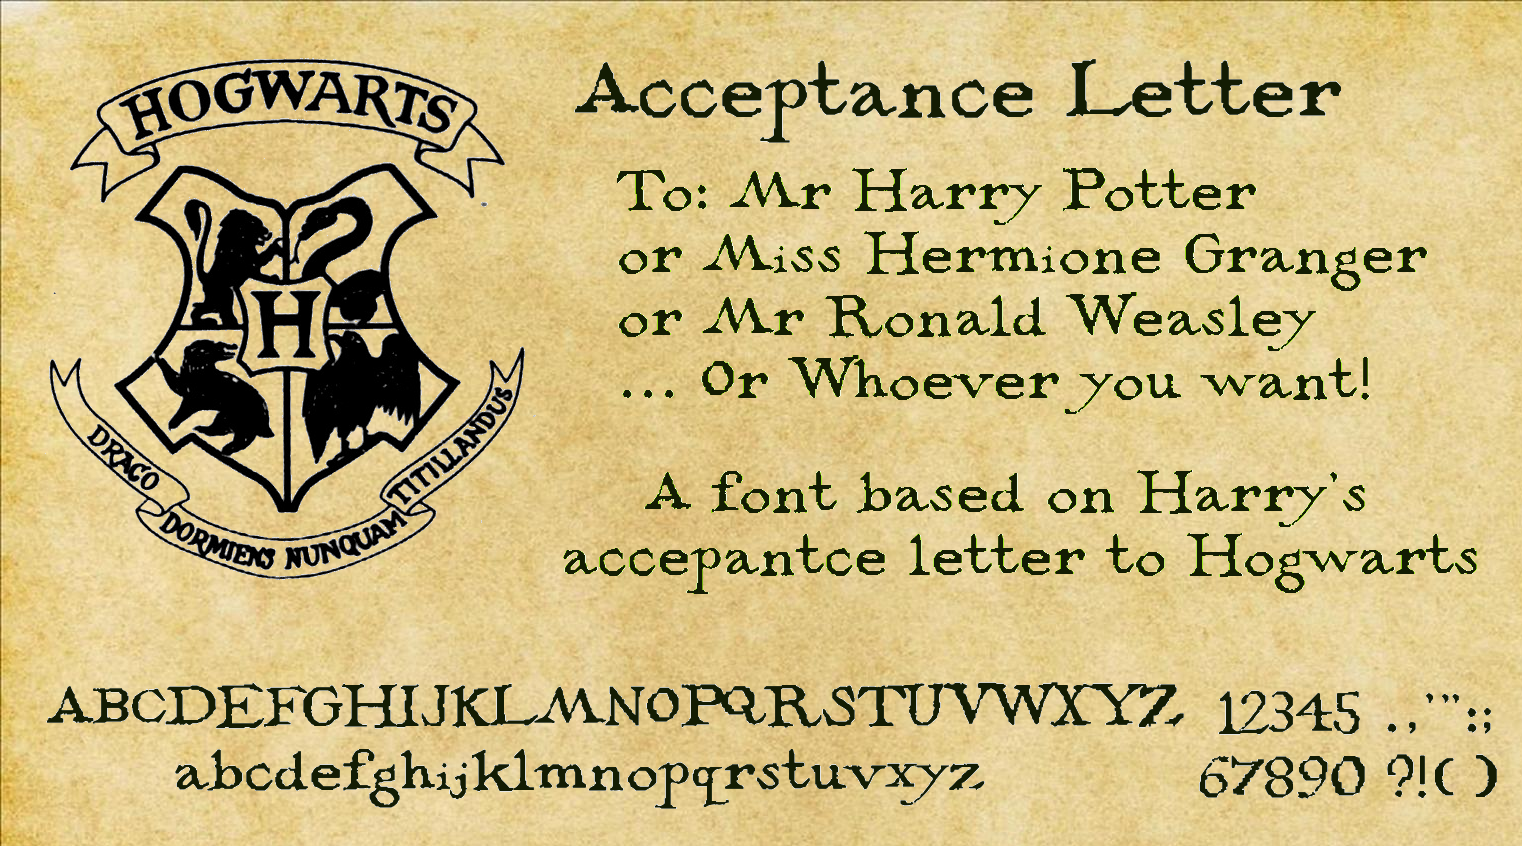 harry potter letter 2 acceptance letter by decat on deviantart 1276